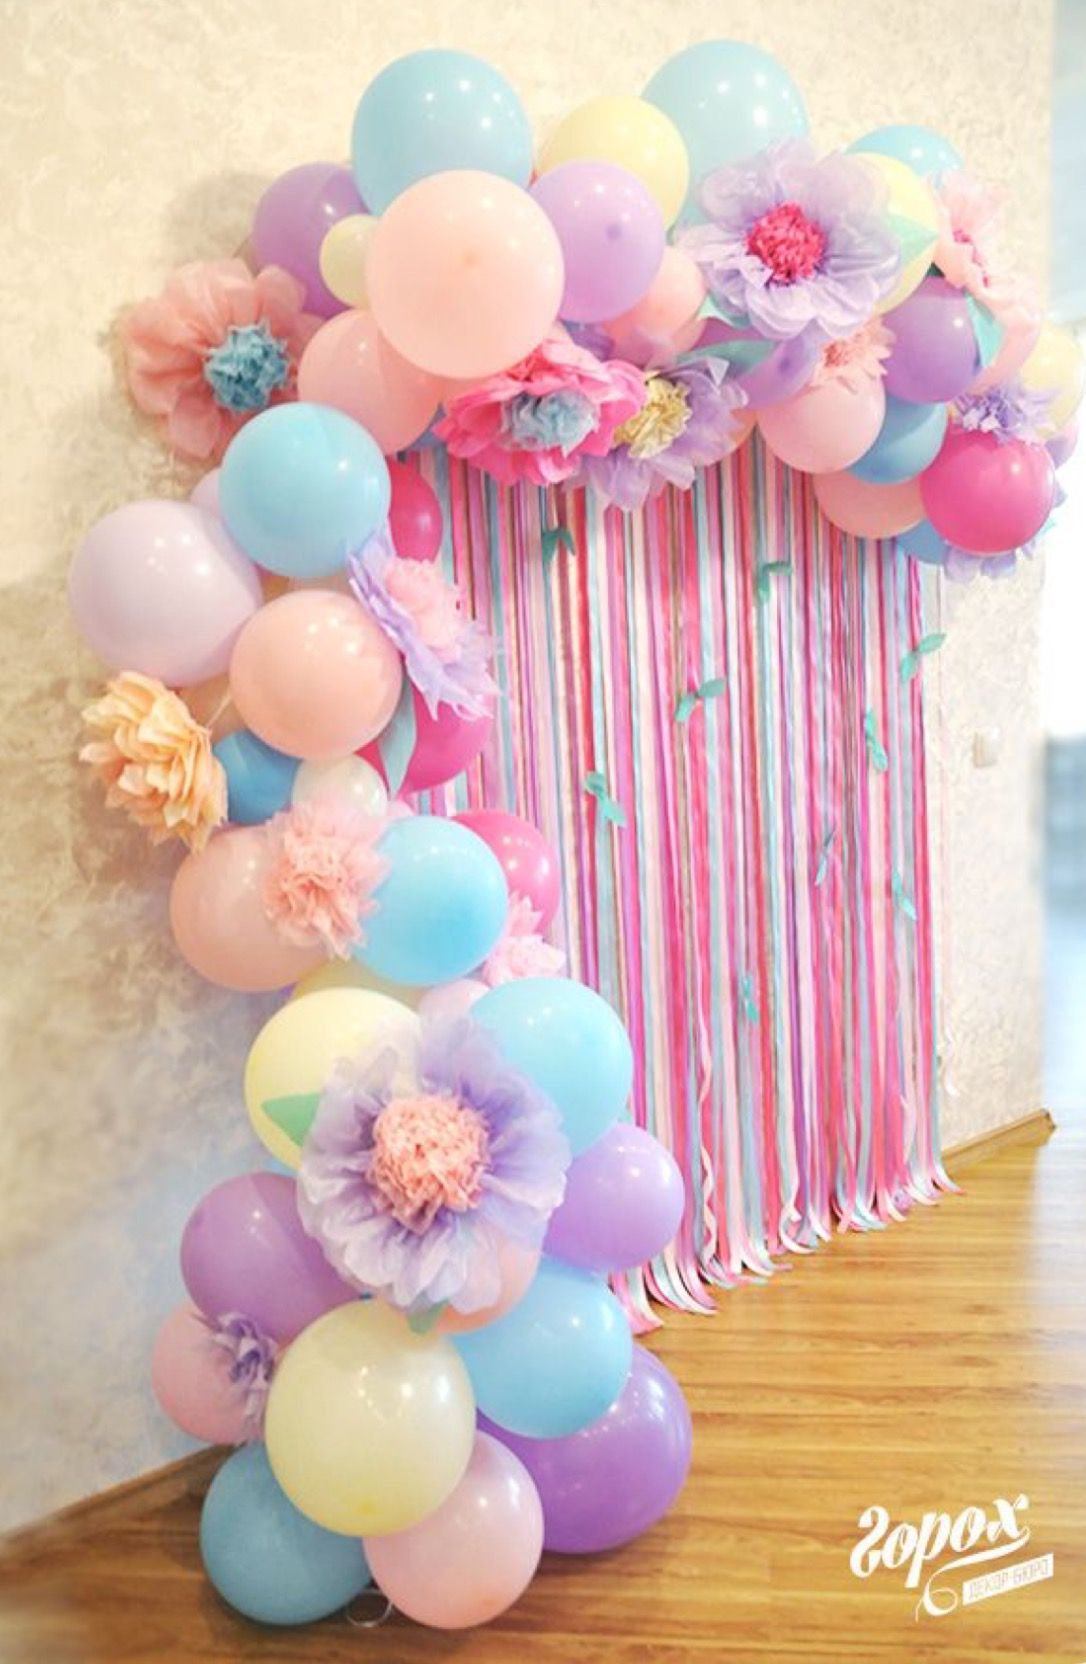 Pin by jocelyn ruiz on fondos para selfie encortinados for Baby birthday decoration